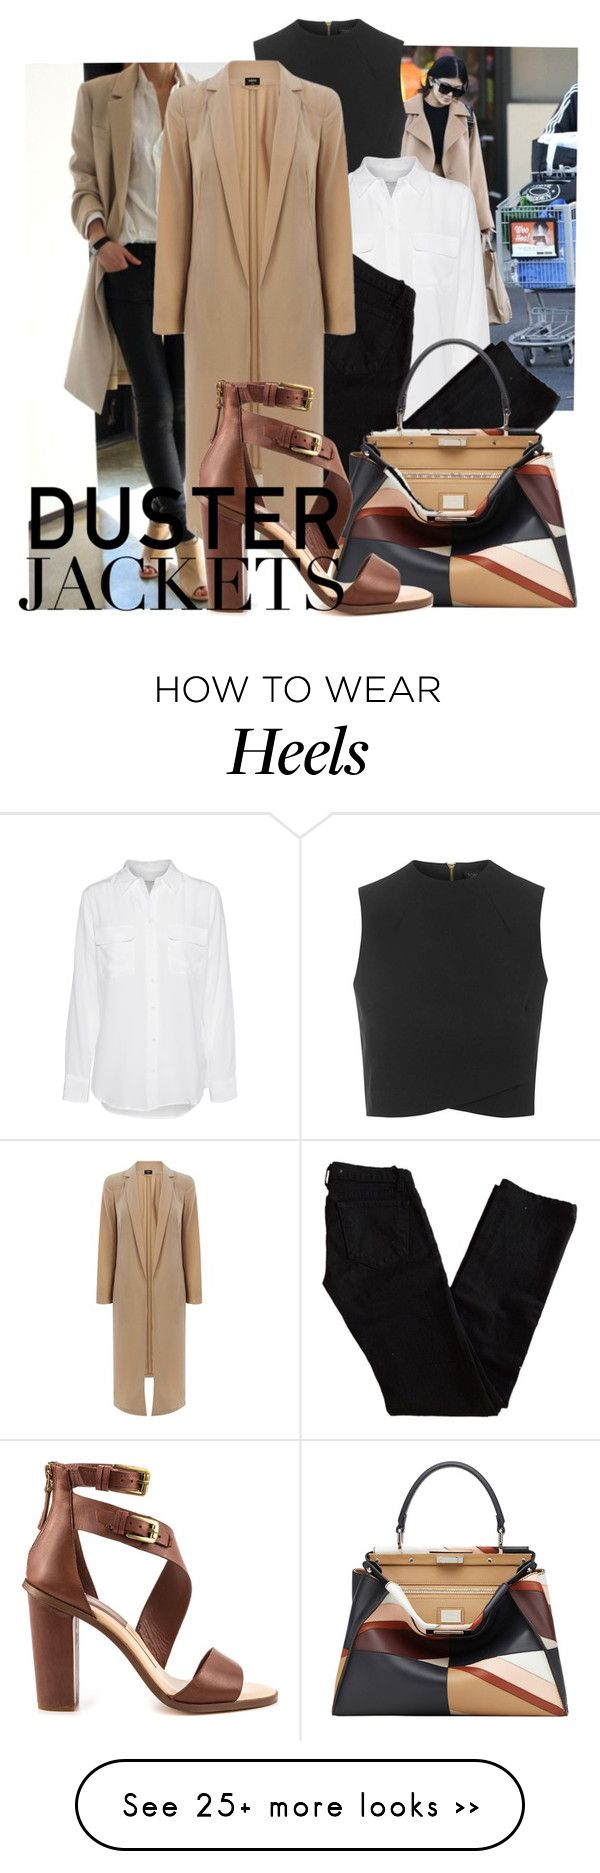 """""""Camel Duster"""" by rbsm on Polyvore featuring Topshop, Equipment, J Brand, Oasis, Fendi and Dolce Vita"""